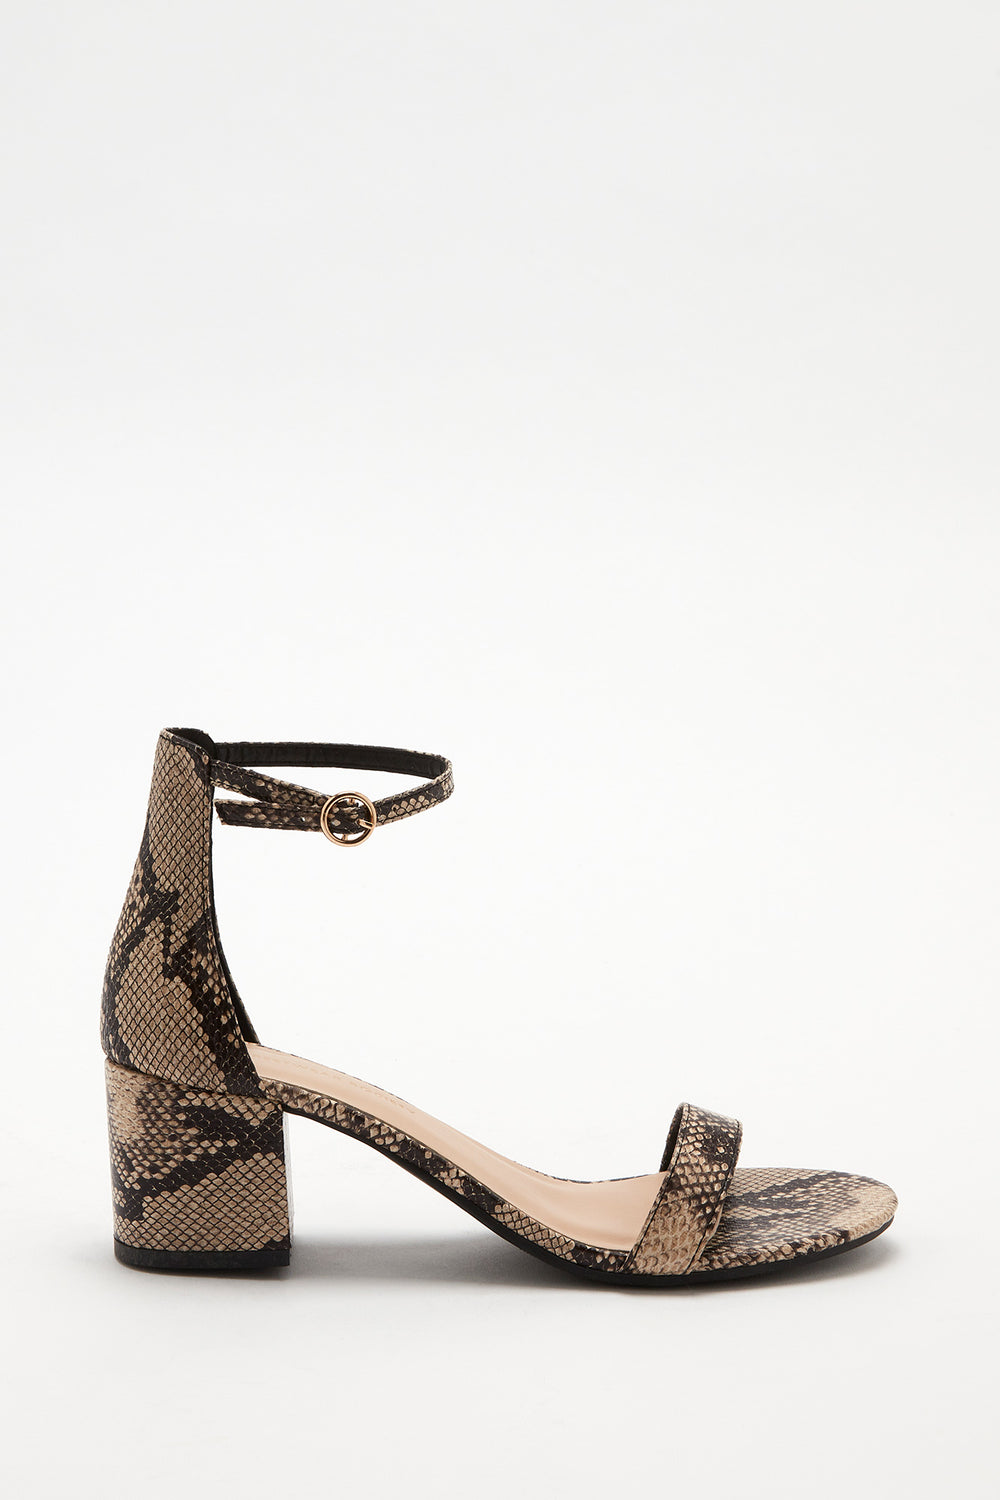 Open-Toe Block Heel Sandal Black with White